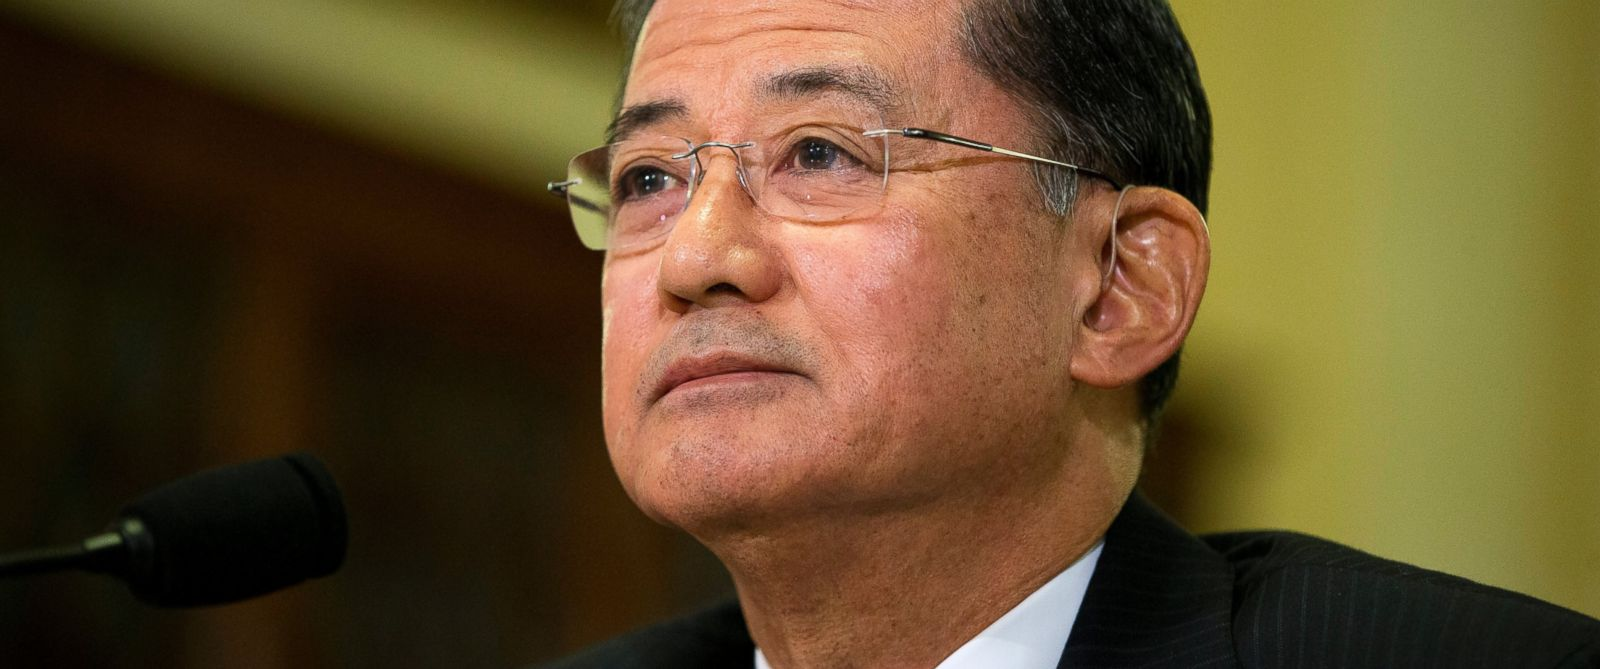 PHOTO: In this Oct. 9, 2013, file photo, Veterans Affairs Secretary Eric Shinseki listens as he testifies on Capitol Hill in Washington.